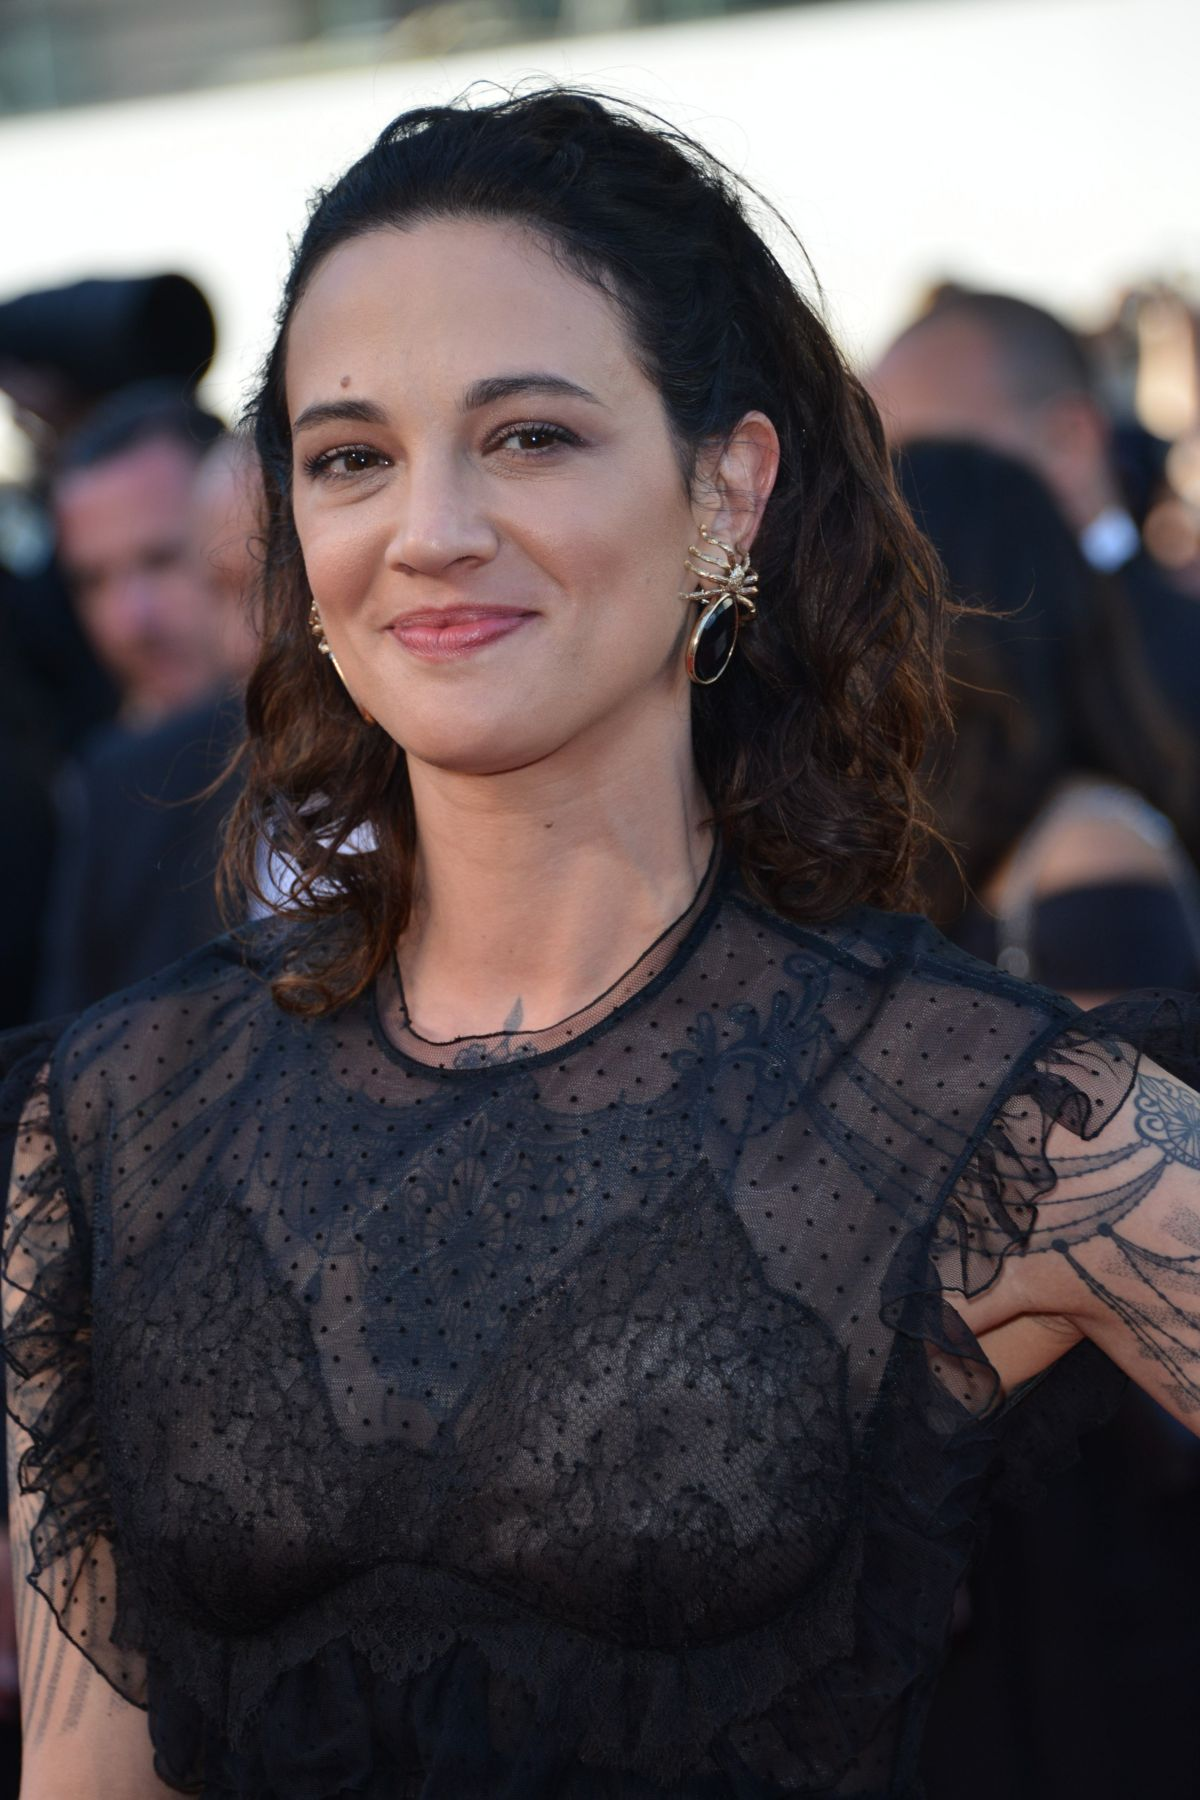 Anthony Bourdains girlfriend Asia Argento releases statement about the suicide of her love and protector